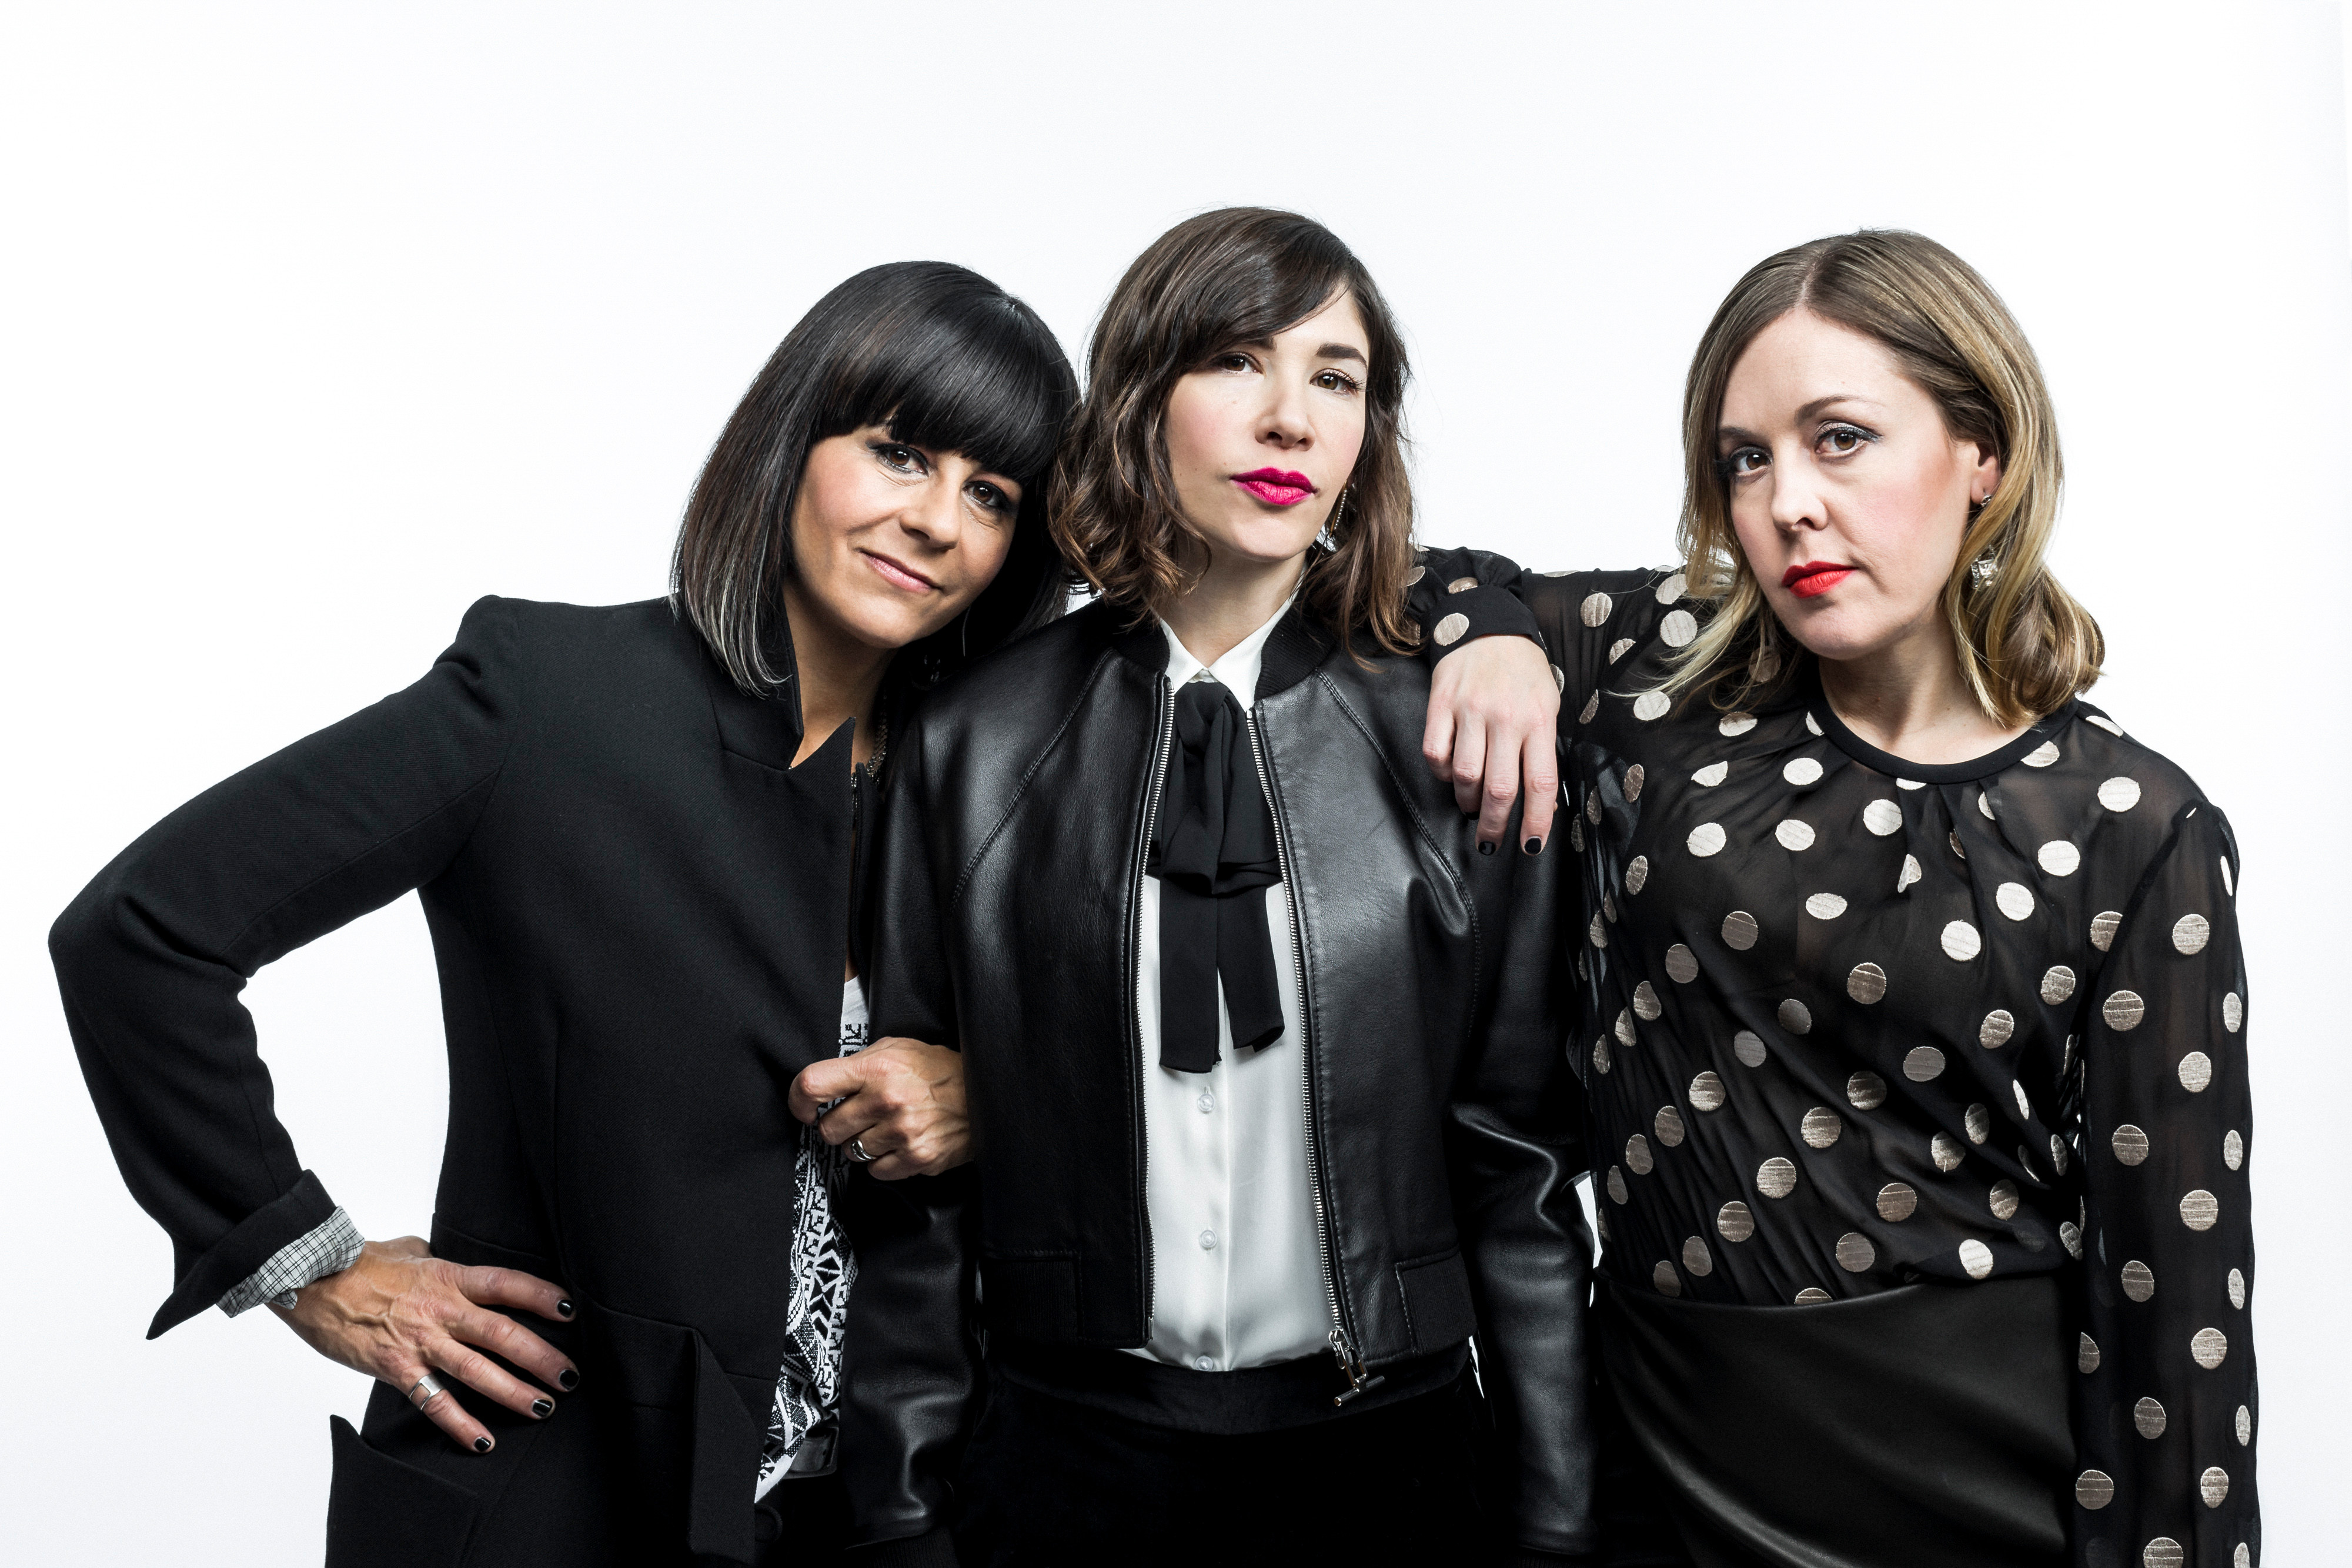 -- PHOTO MOVED IN ADVANCE AND NOT FOR USE - ONLINE OR IN PRINT - BEFORE JAN. 4, 2015. -- Janet Weiss, Carrie Brownstein and Corin Tucker of Sleater-Kinney in New York, Dec. 2, 2014. The all-female band Sleater-Kinney, sorely missed in indie-rock since 2006, is set to release a new album. (Chad Batka/The New York Times)